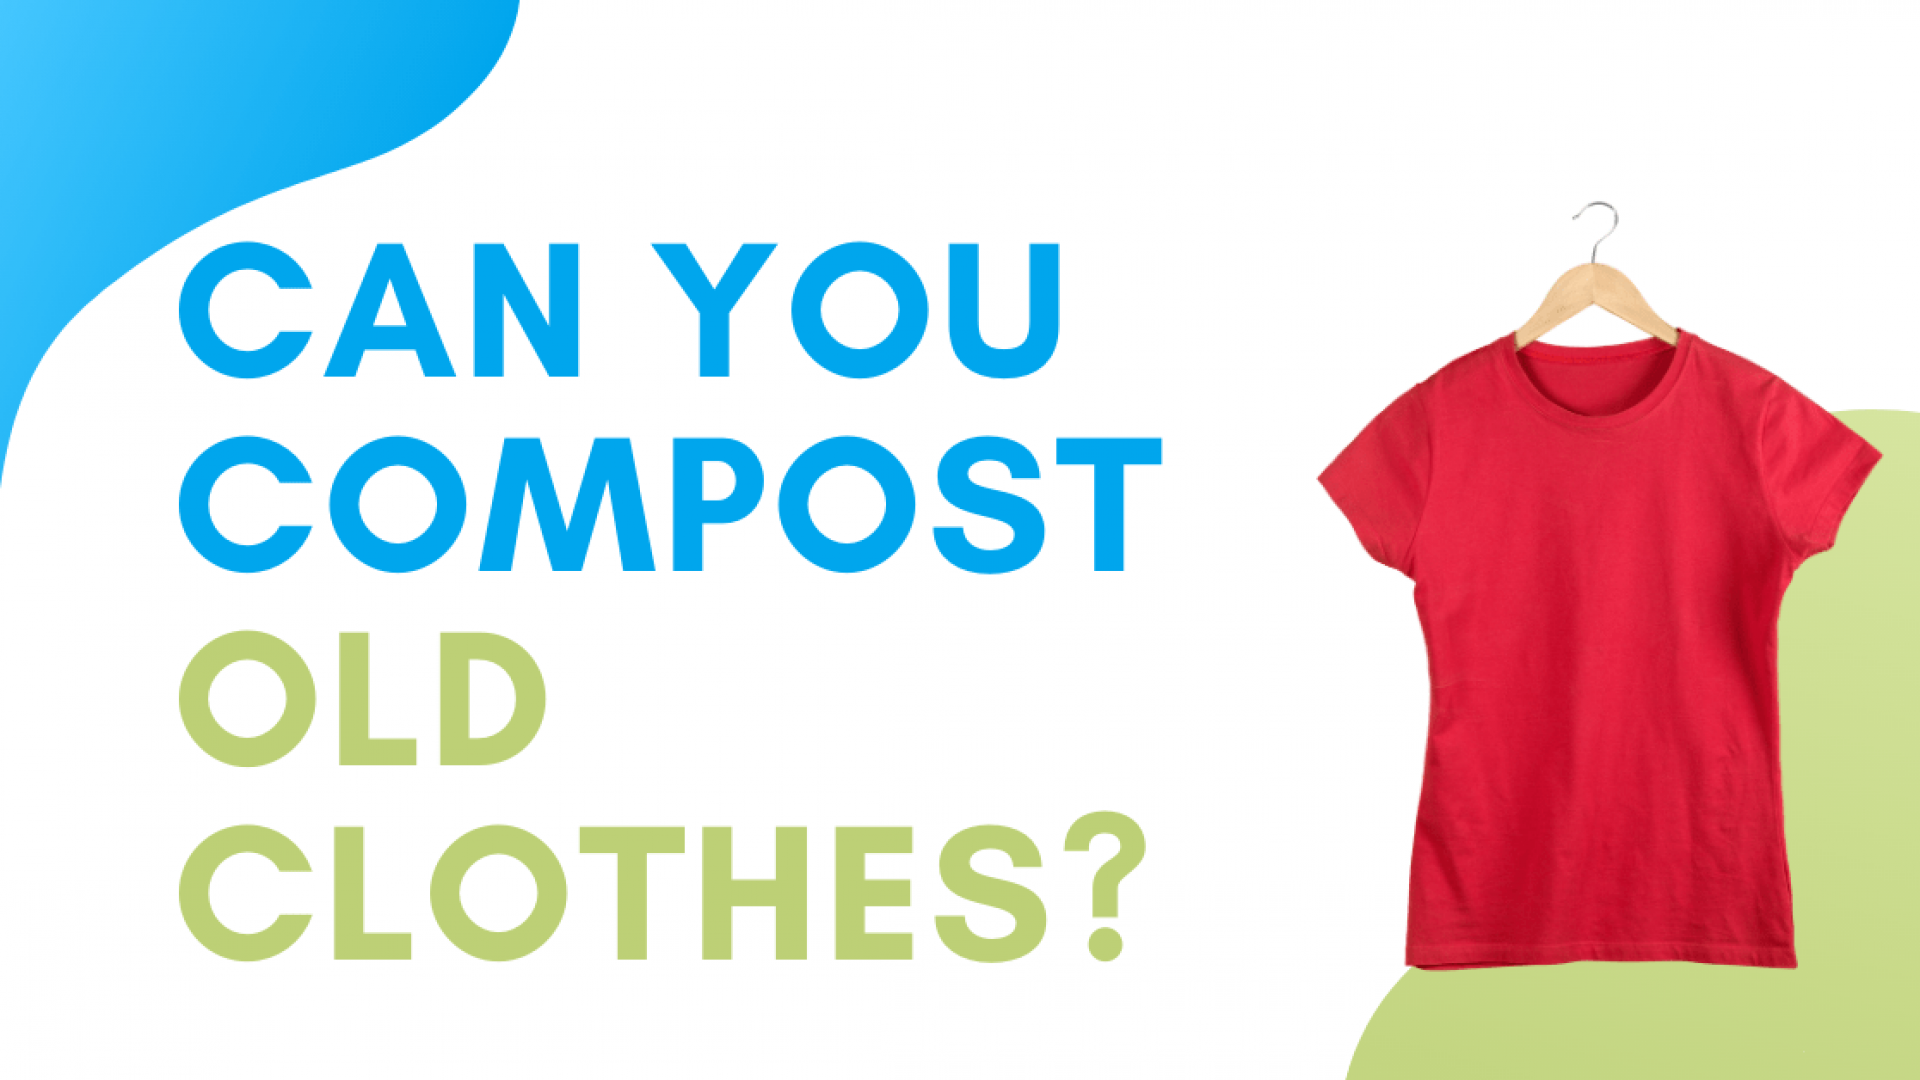 Can You Compost Old Clothes? Yes! Here's How